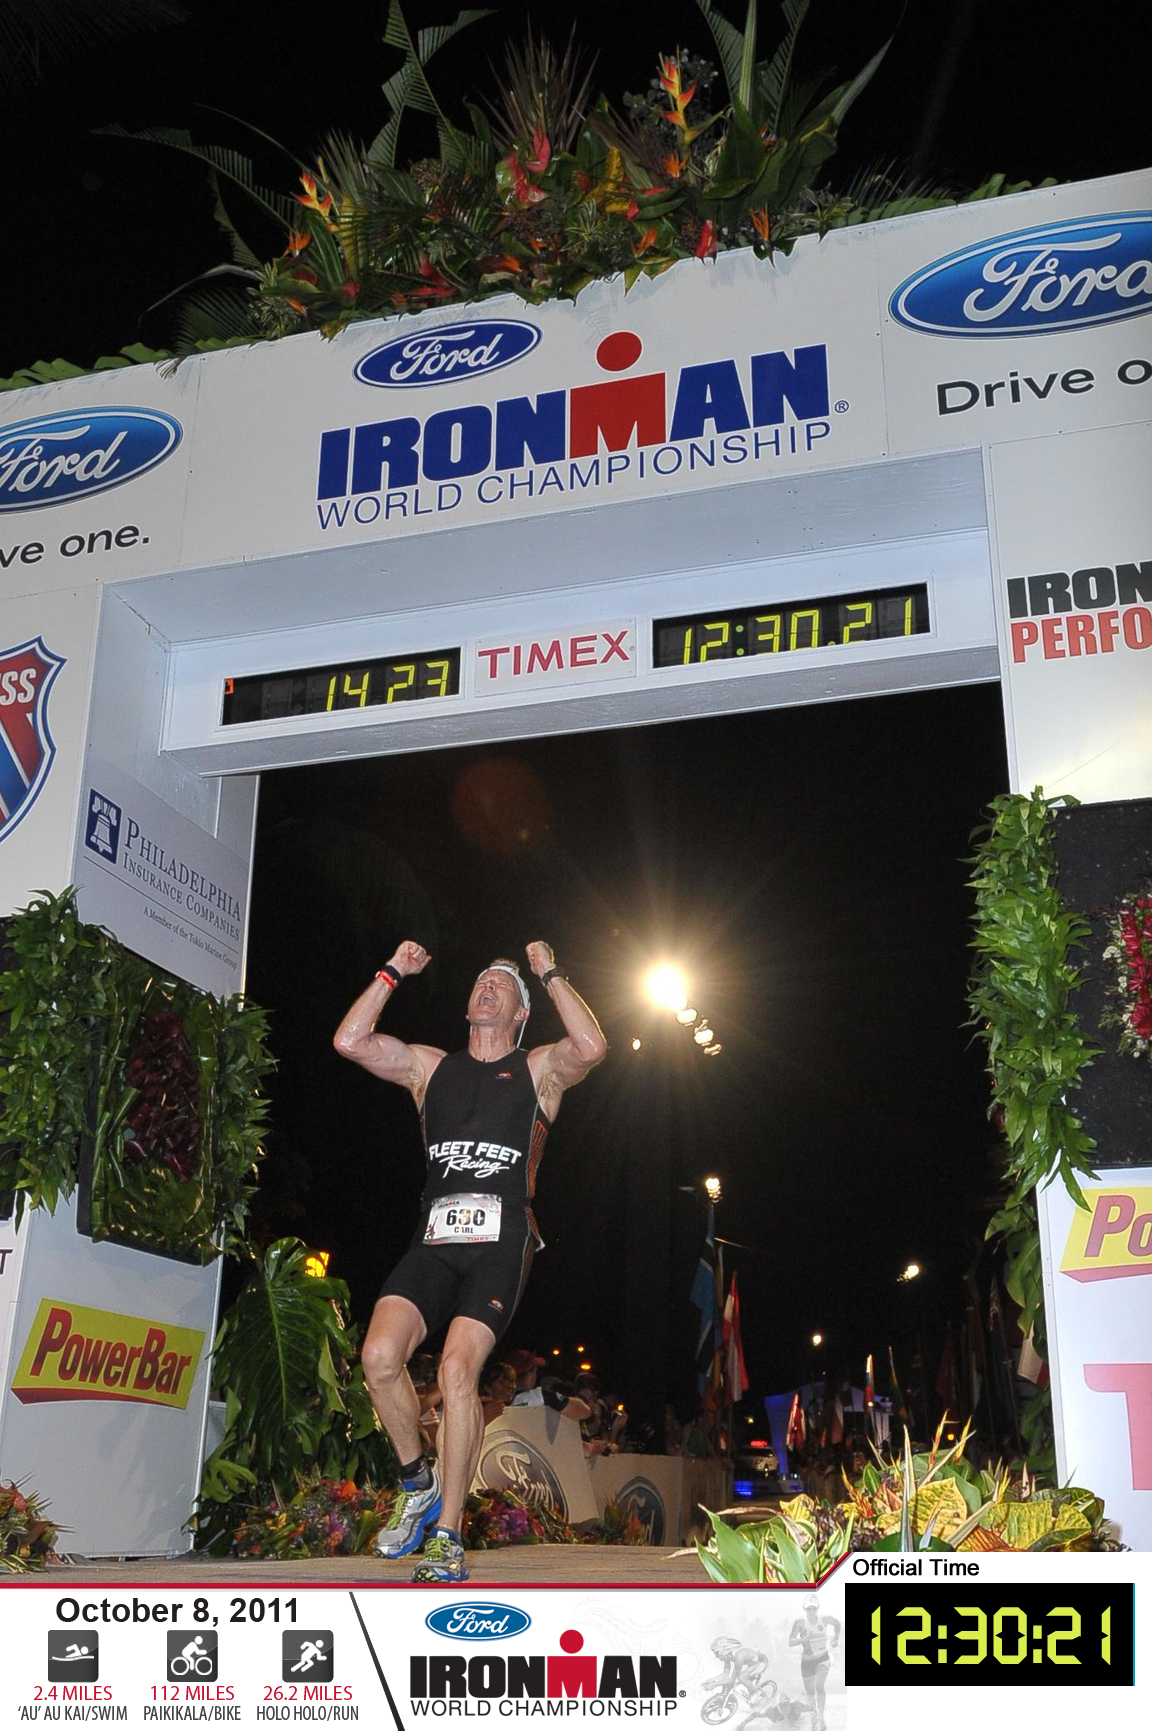 the making of an Ironman in 5 months